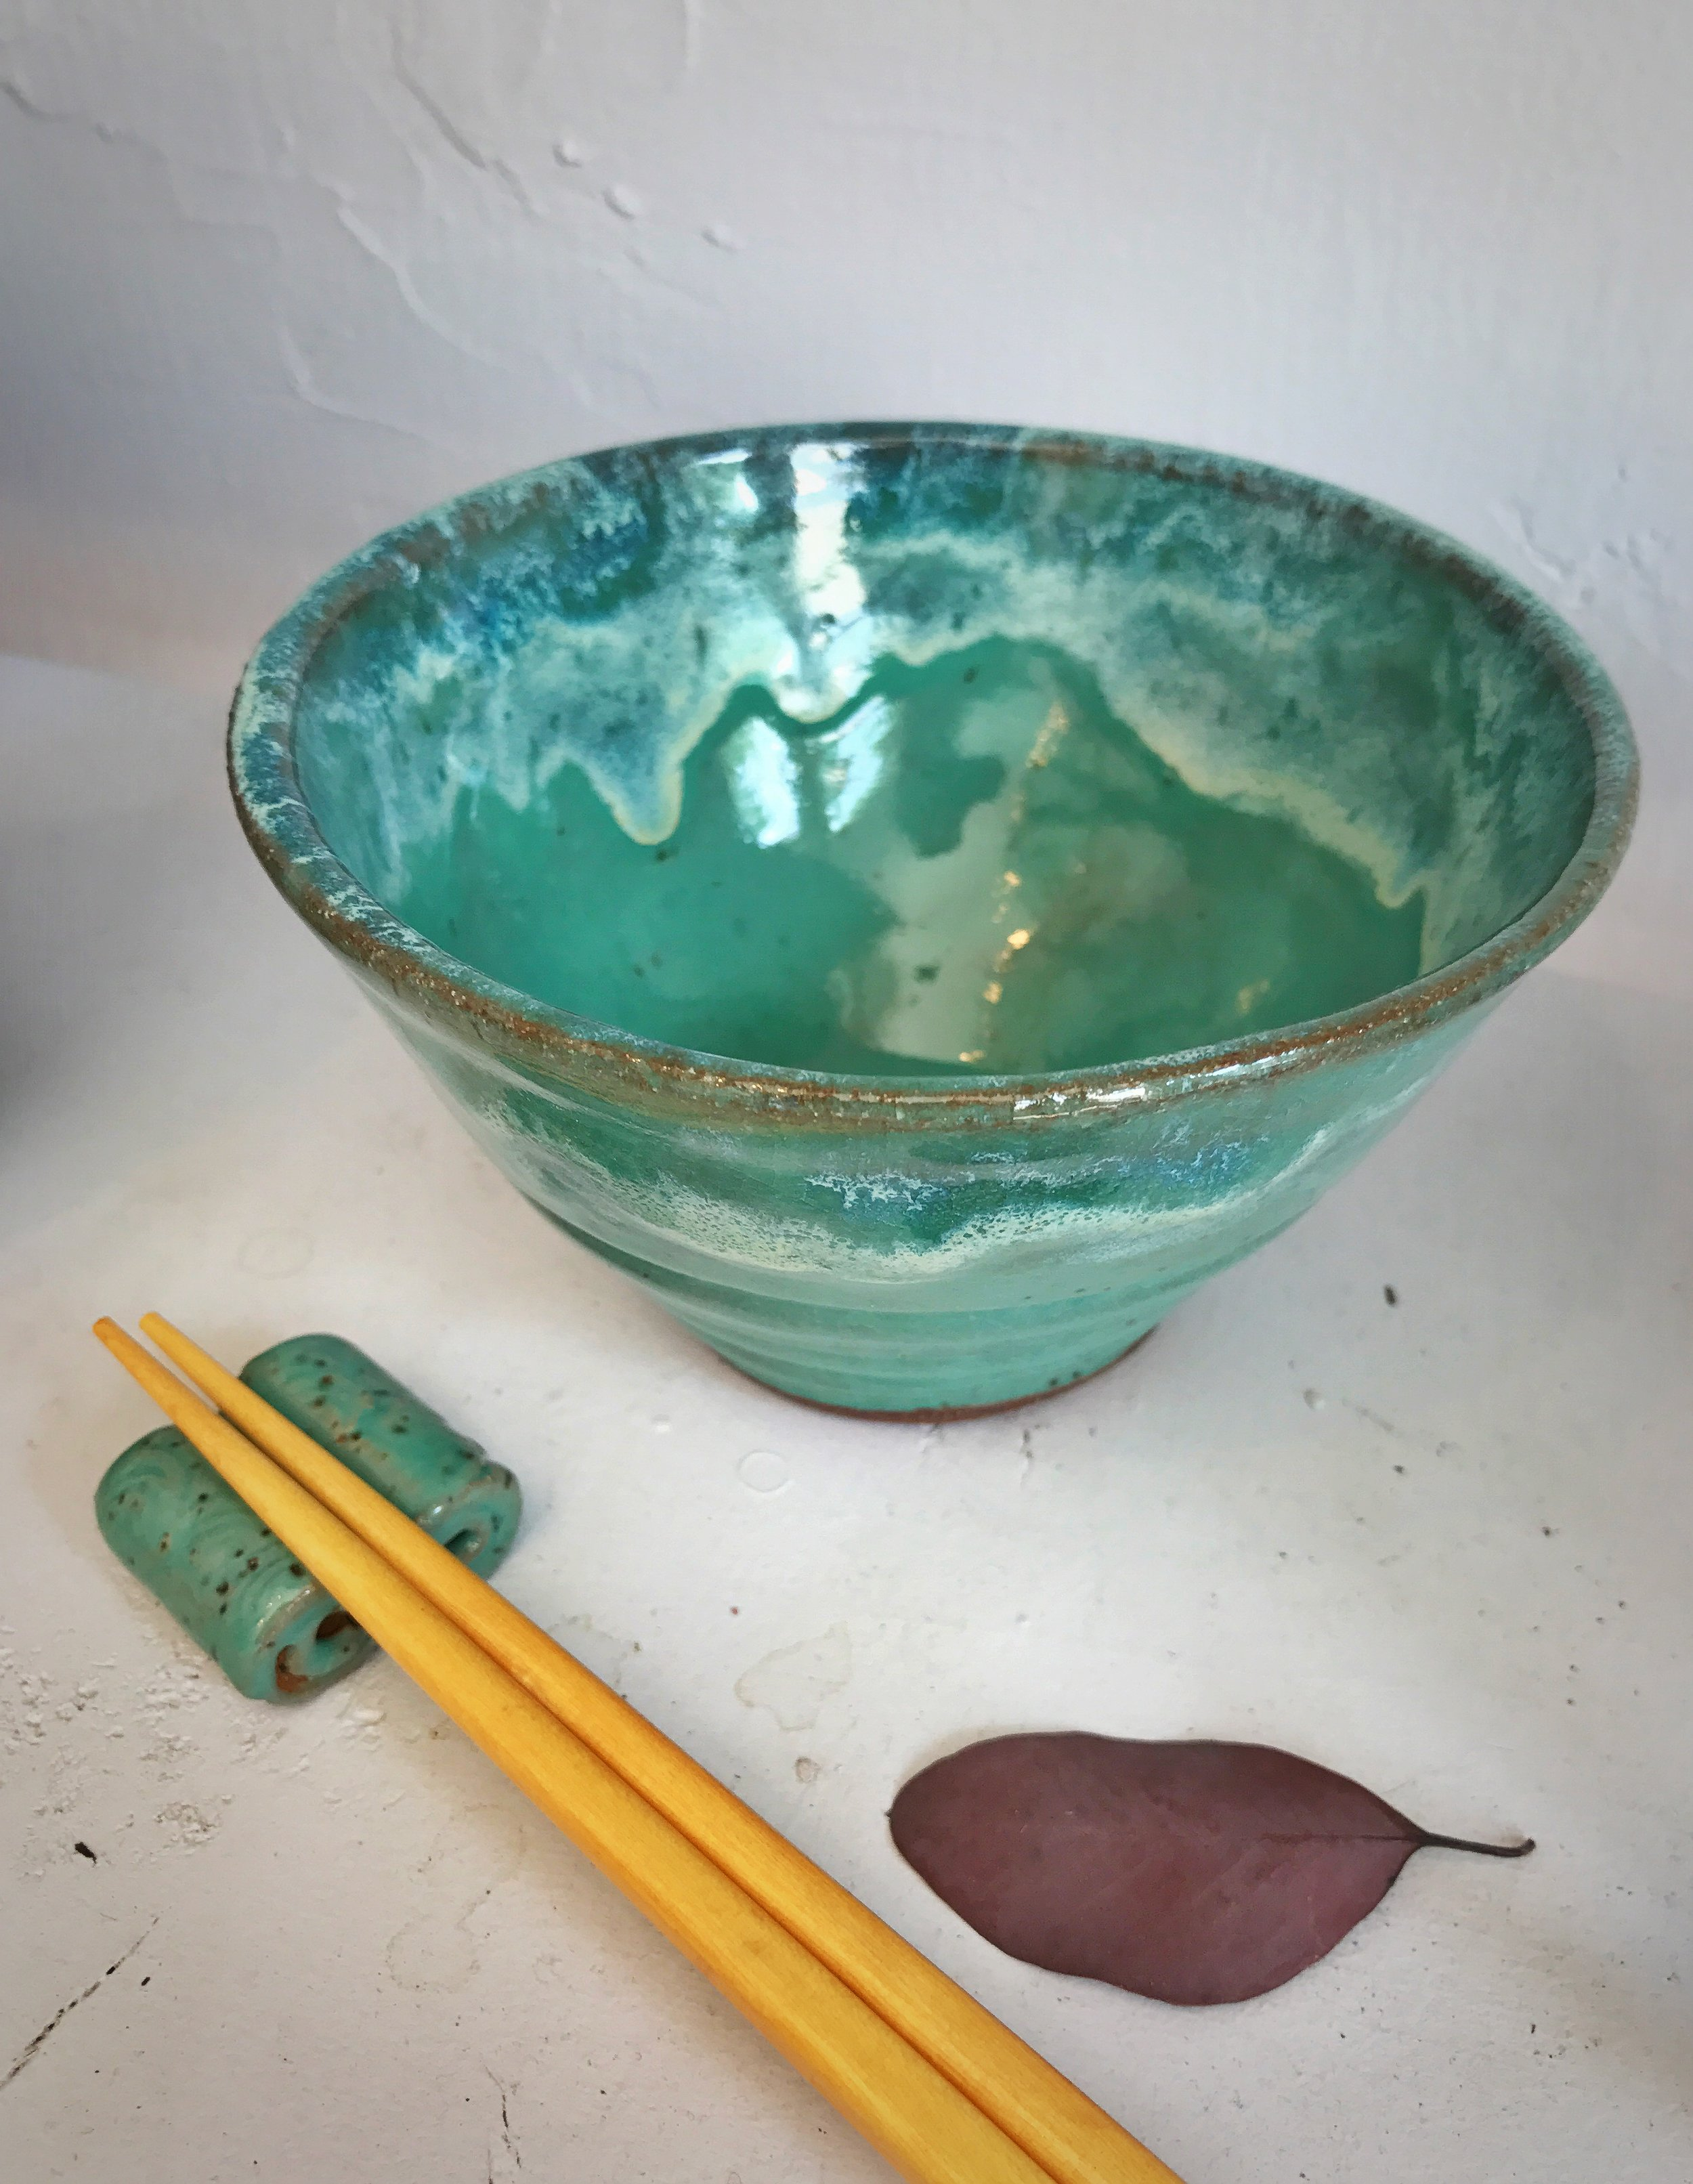 William Blakemore - Work shown at Creative Hands in Silver City501 Covellite DriveTyrone, NM 88065Tel: 575-654-5316blakemore1936@gmail.com